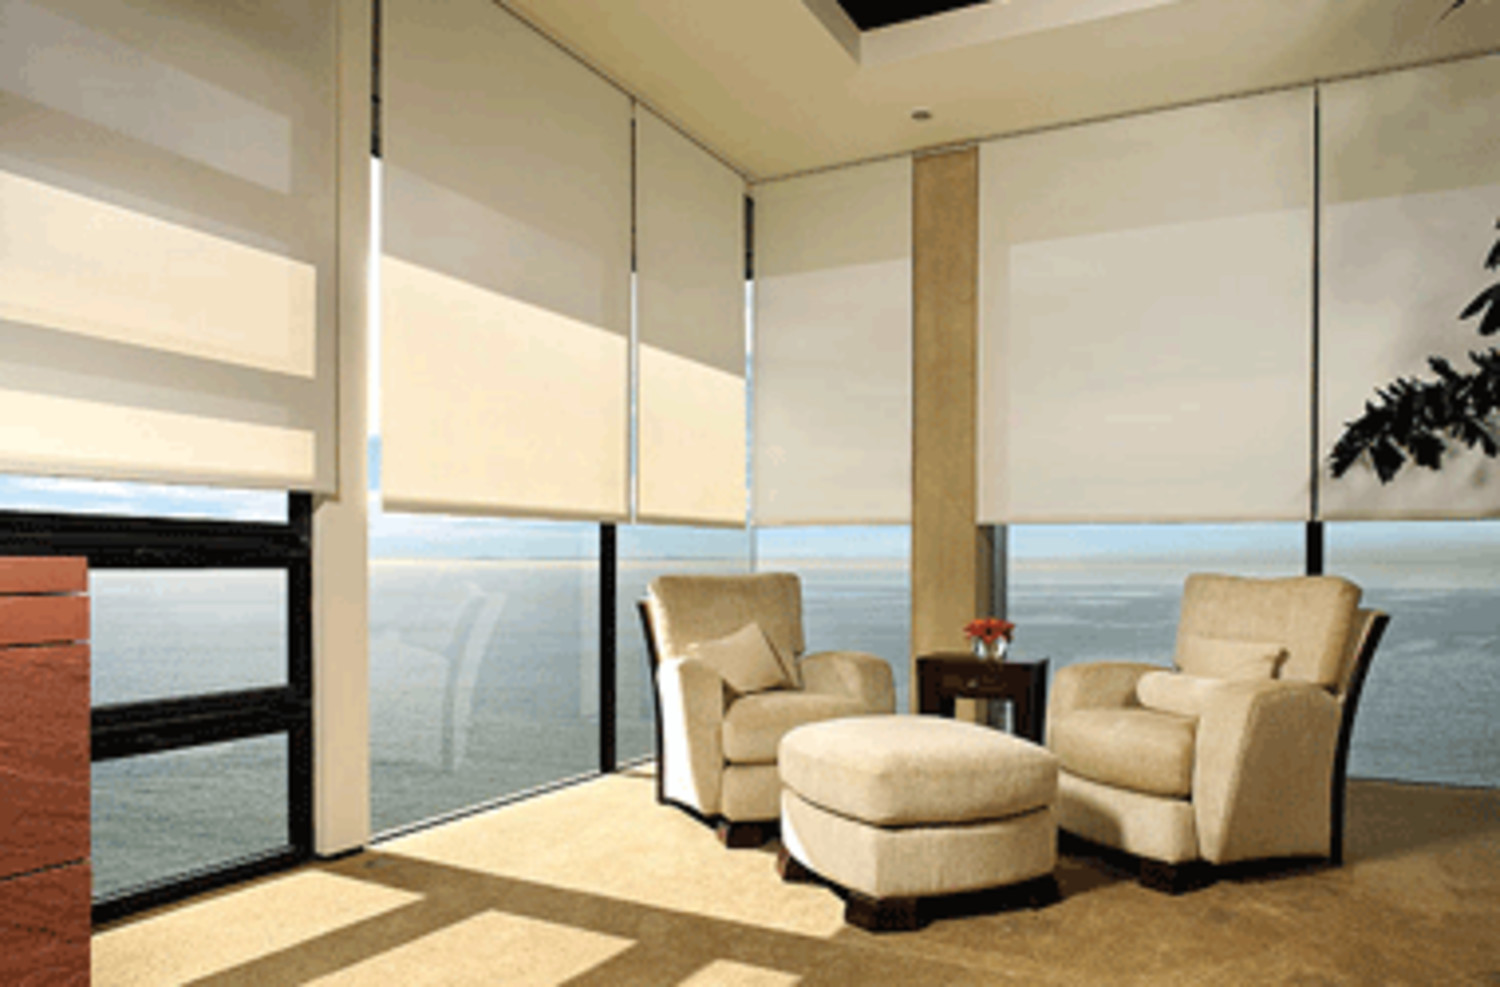 Motorized Blind And Shade Systems Digital21 Smart Home